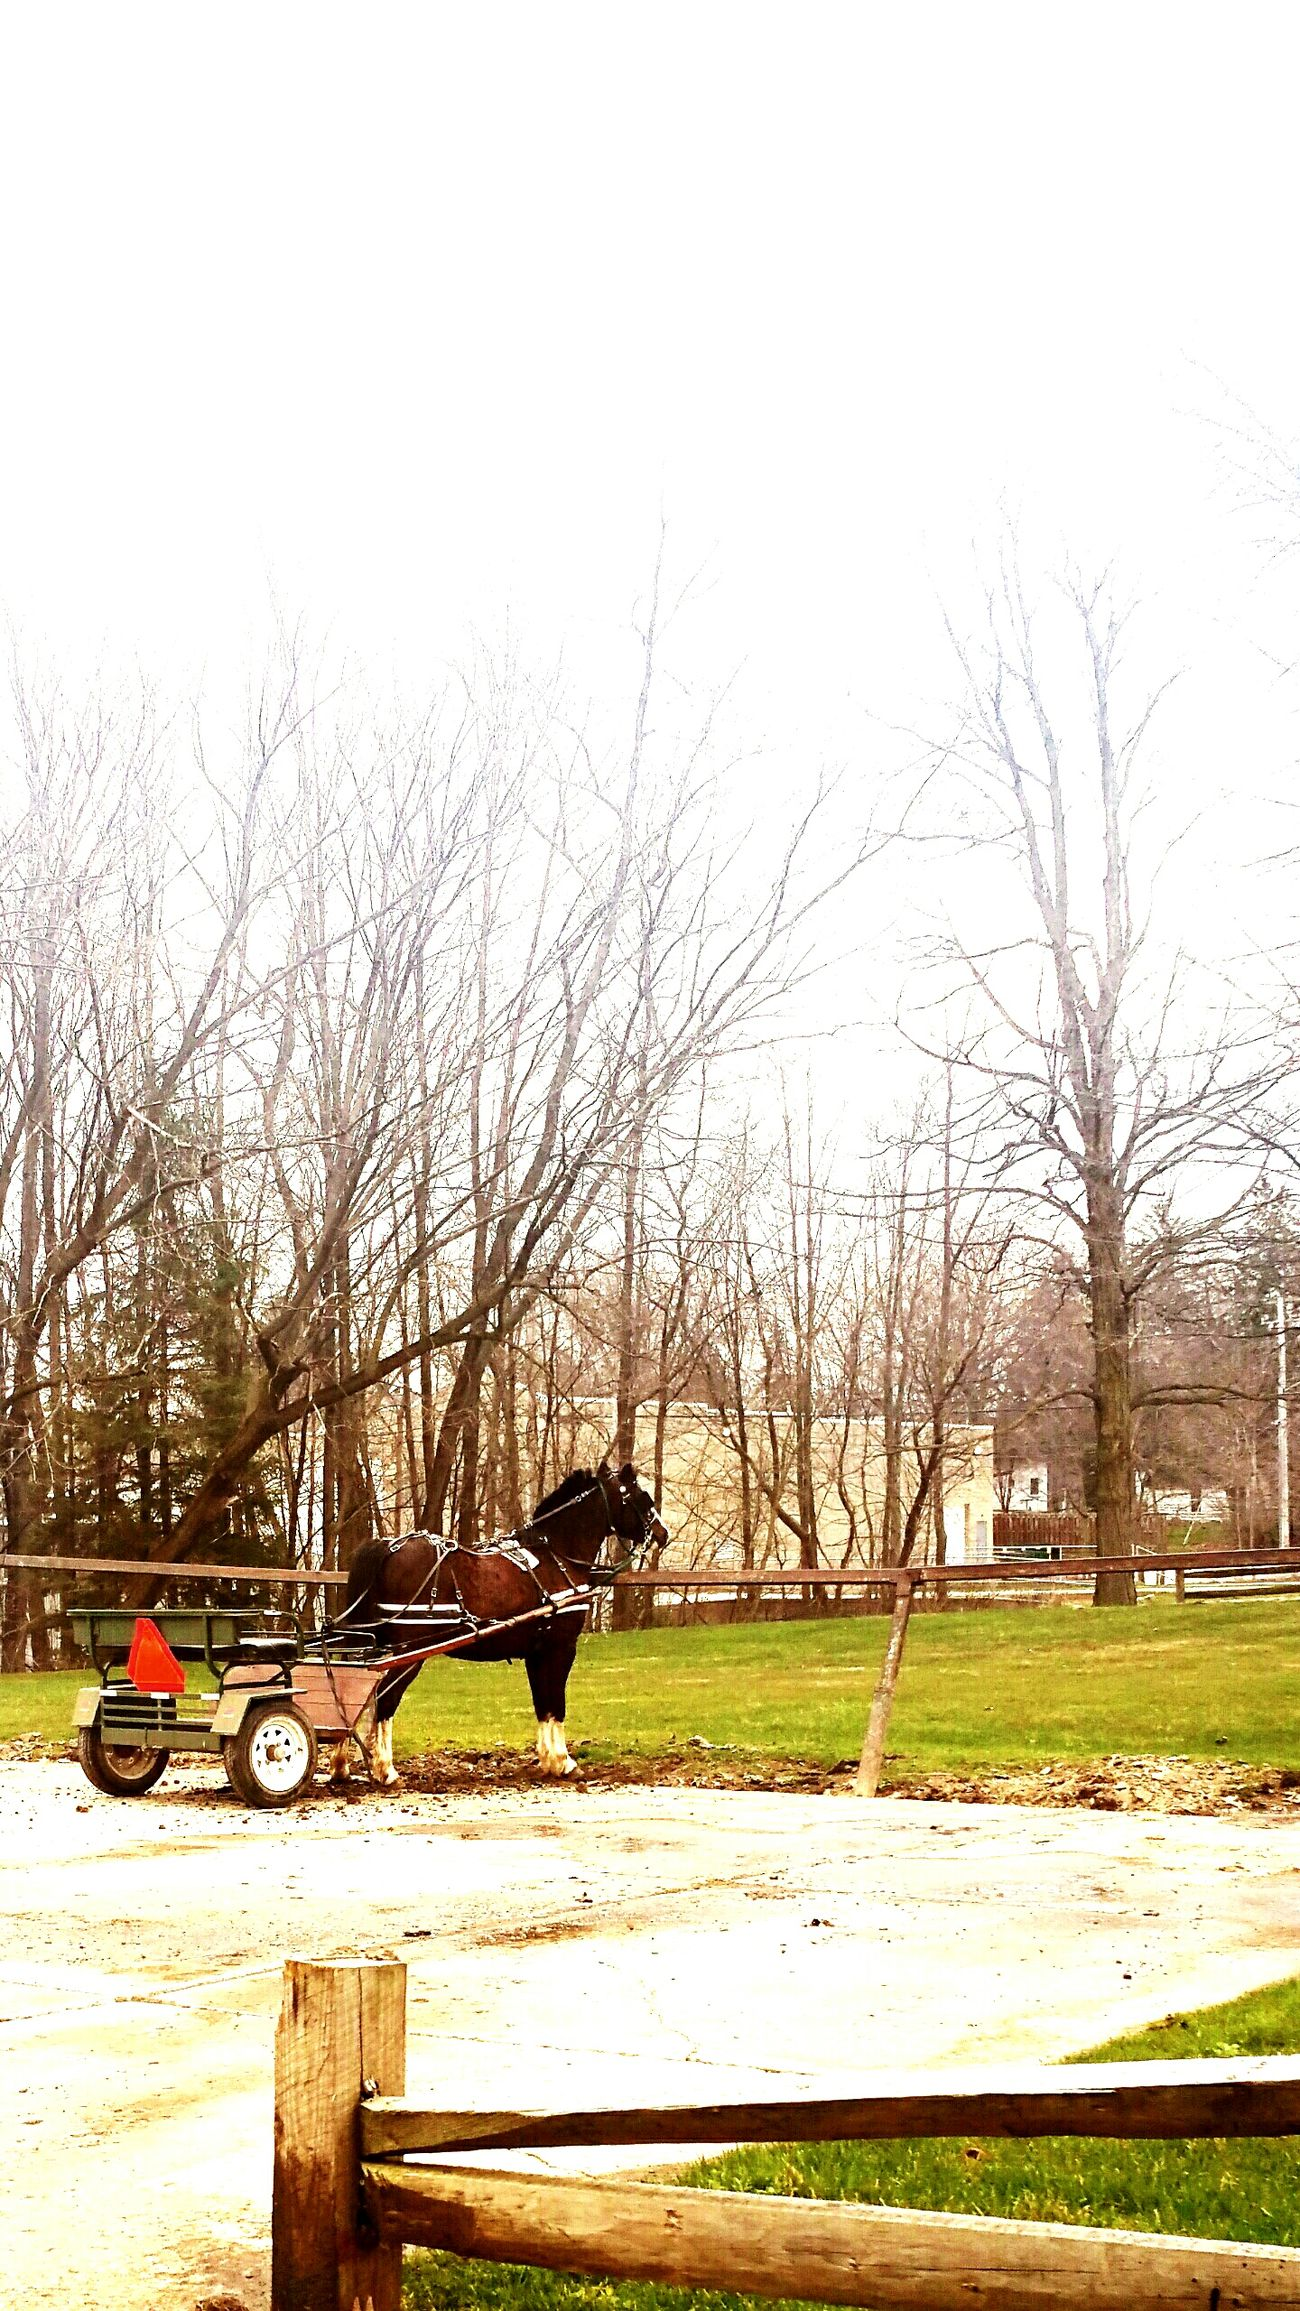 Working Animal Working Horse Amish Amish Country My Town My World... Little Pony Little Wagon Enjoying Life Lovemytown